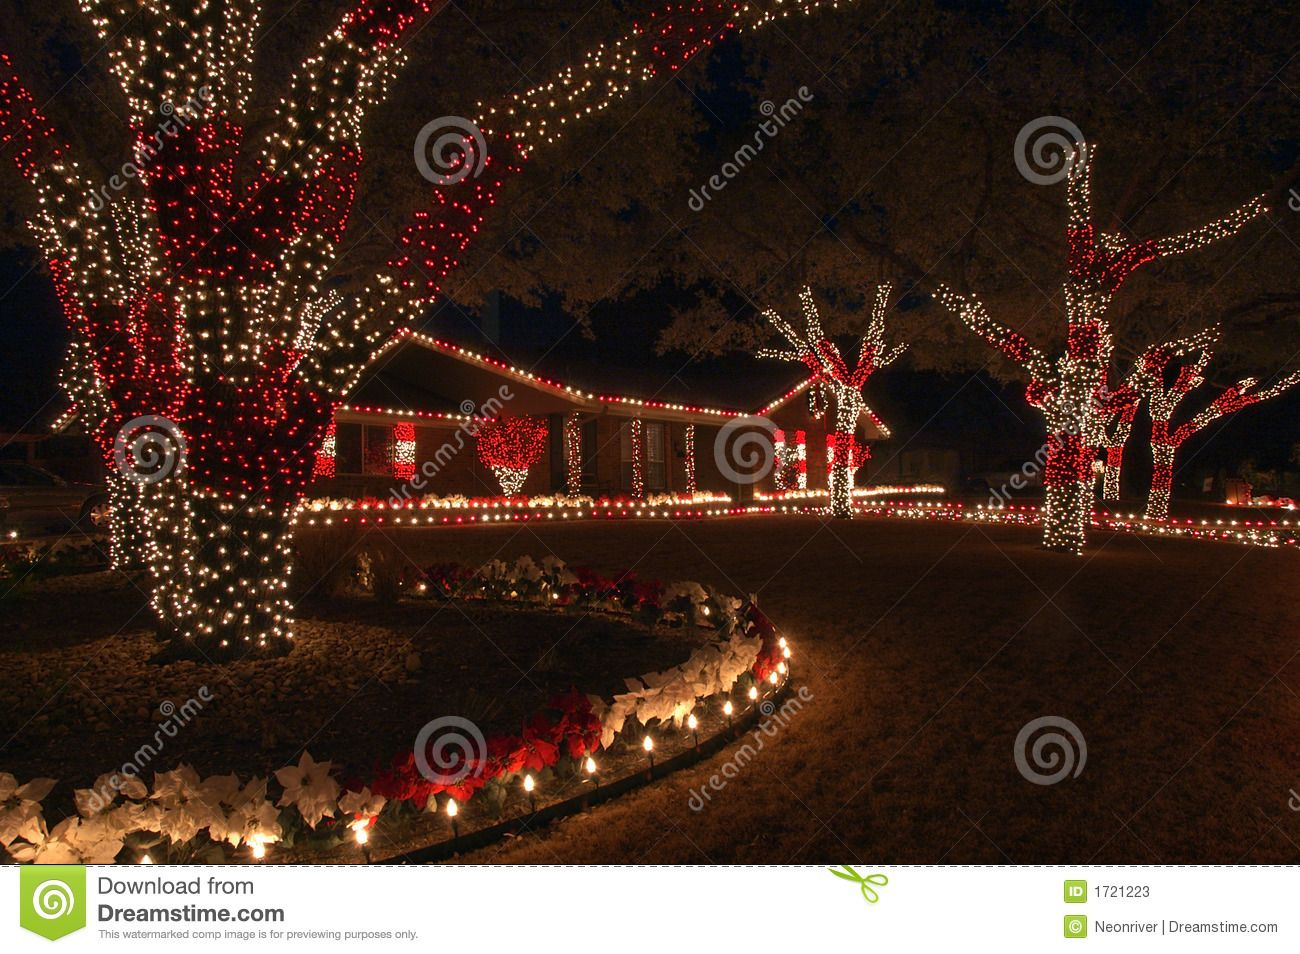 Red and white christmas lights stock photos image 1721223 red and white christmas lights stock photos image 1721223 mozeypictures Choice Image